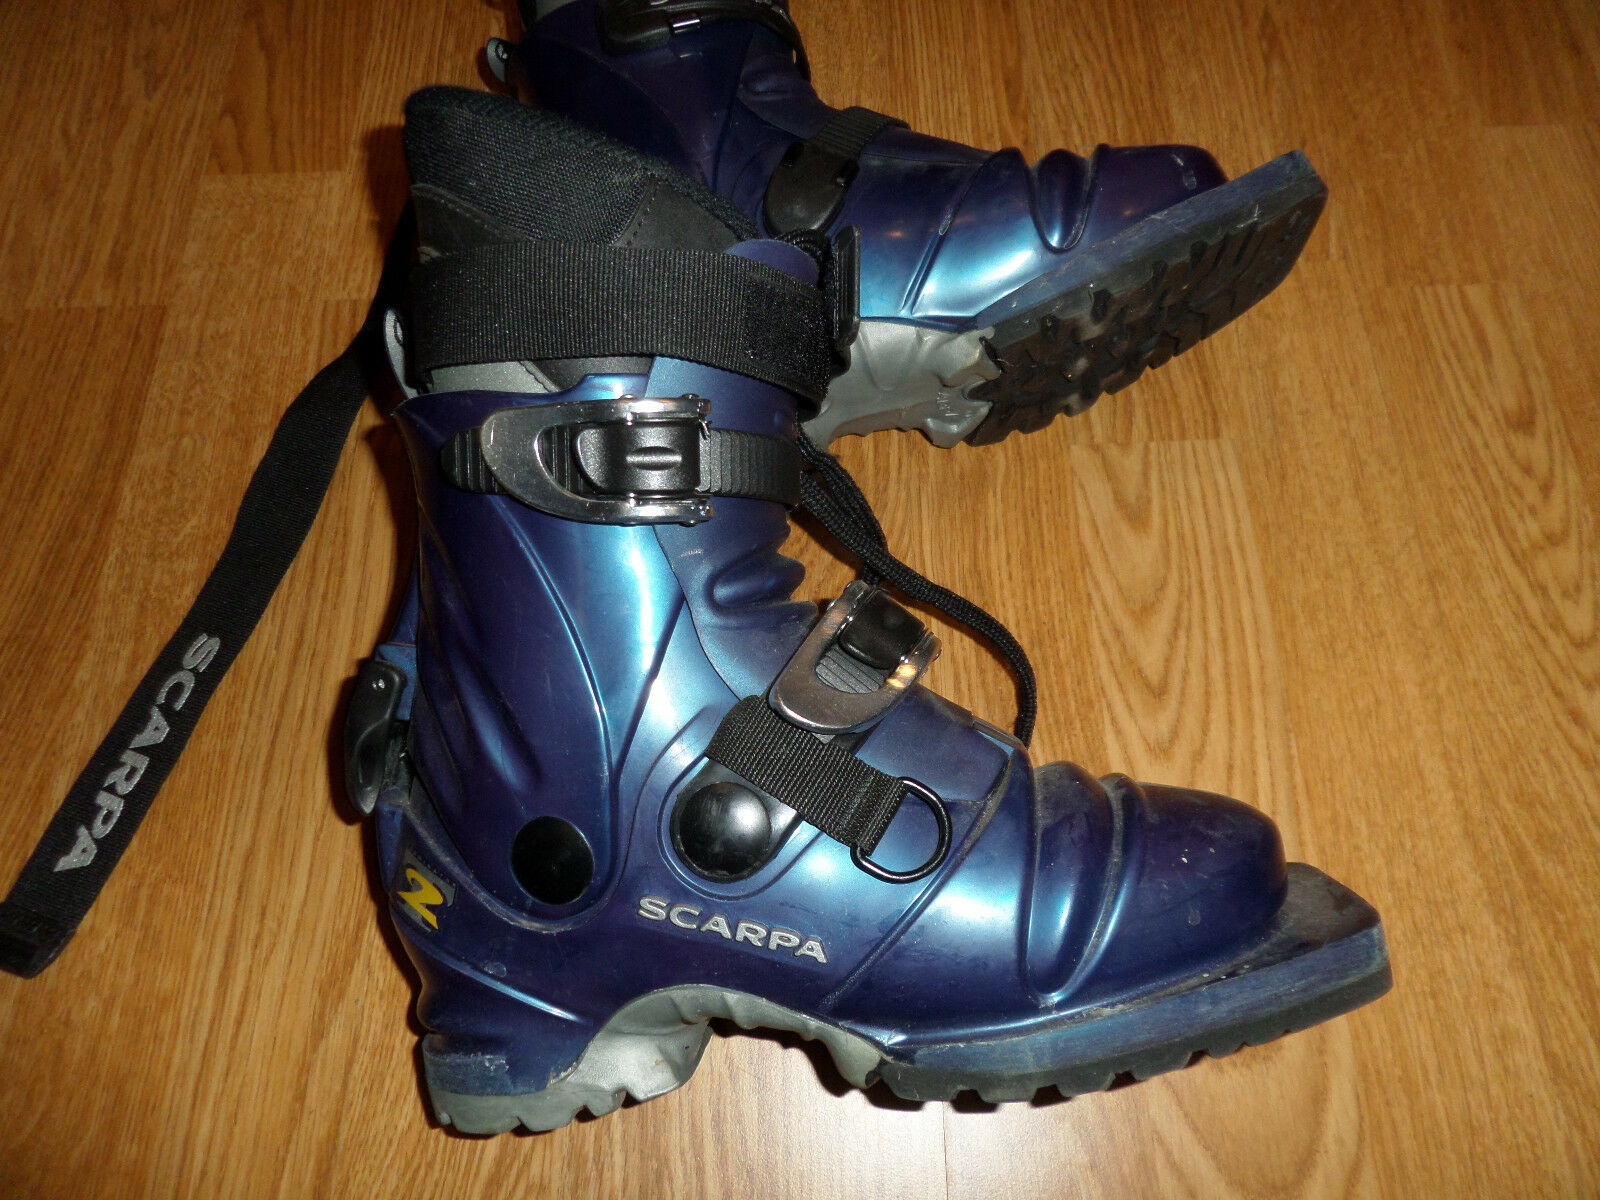 SCARPA T2 TELEMARK 3 PIN CROSS COUNTRY SKI BOOTS WOMEN'S  4.5 MONDO 22.0  cheap sale outlet online